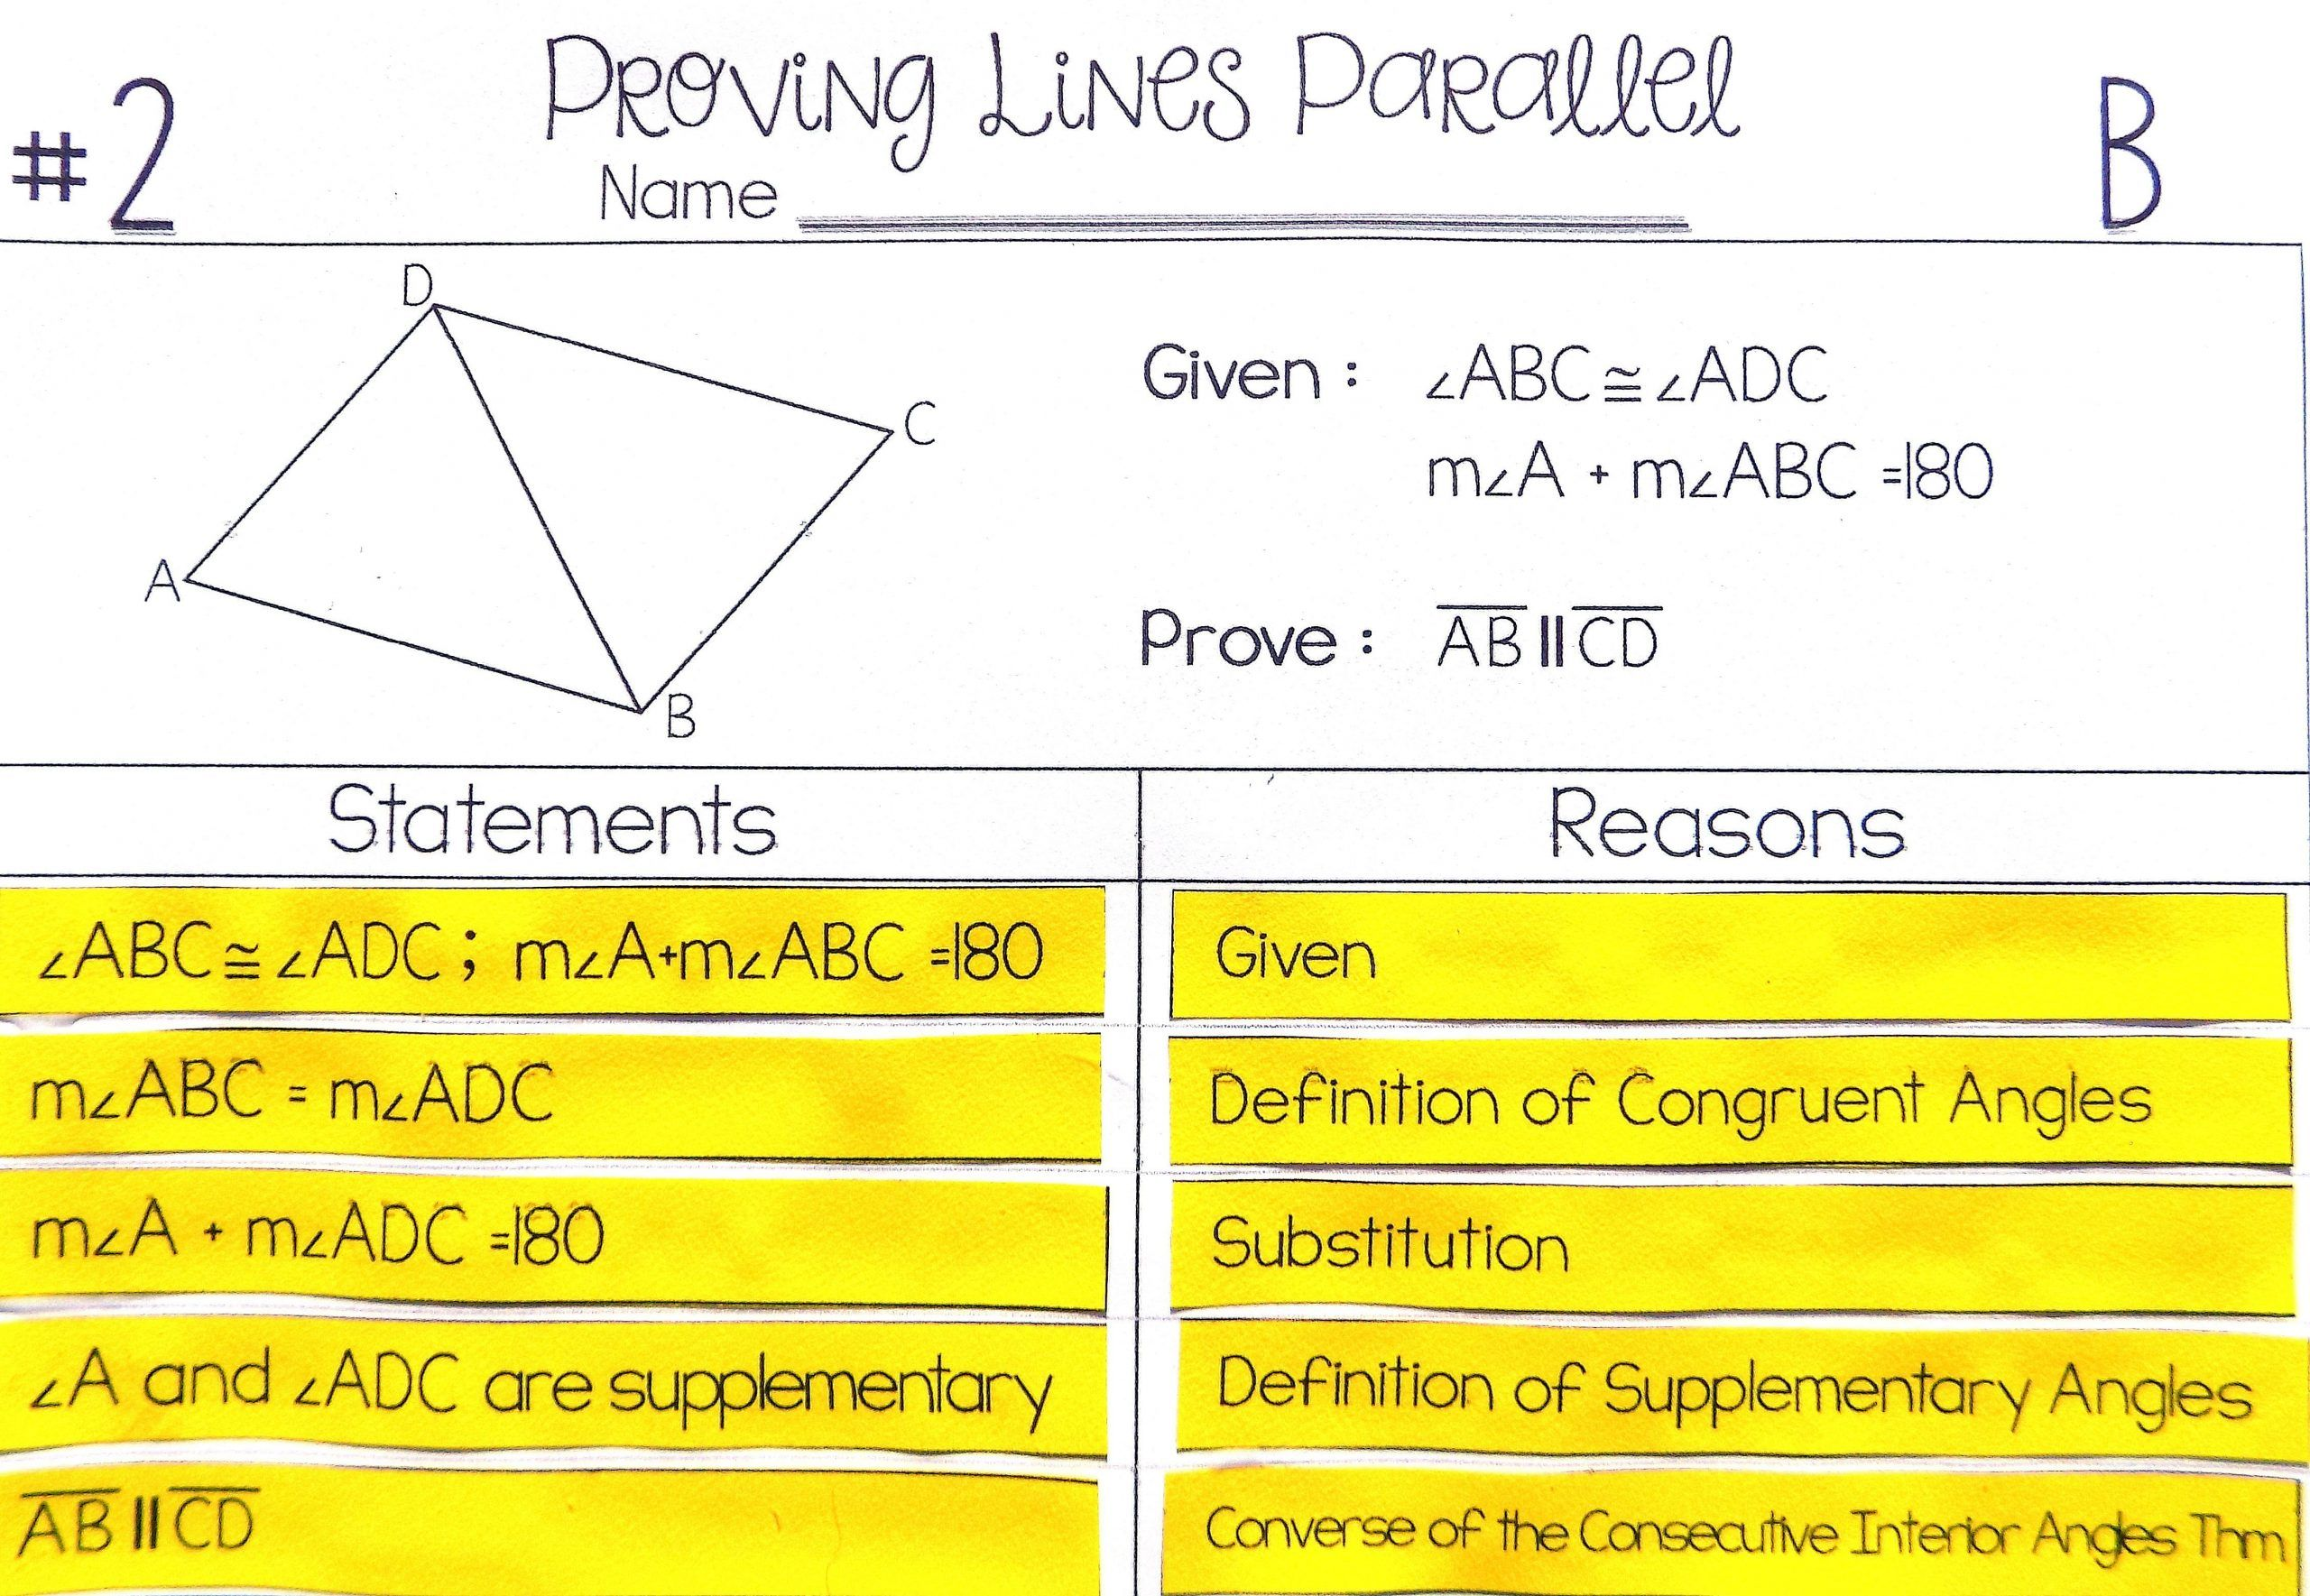 Parallel Lines Proofs Worksheet Answers Proving Lines Parallel Proof Activity High School Geometry In 2020 Geometry Proofs Geometry High School High School Activities